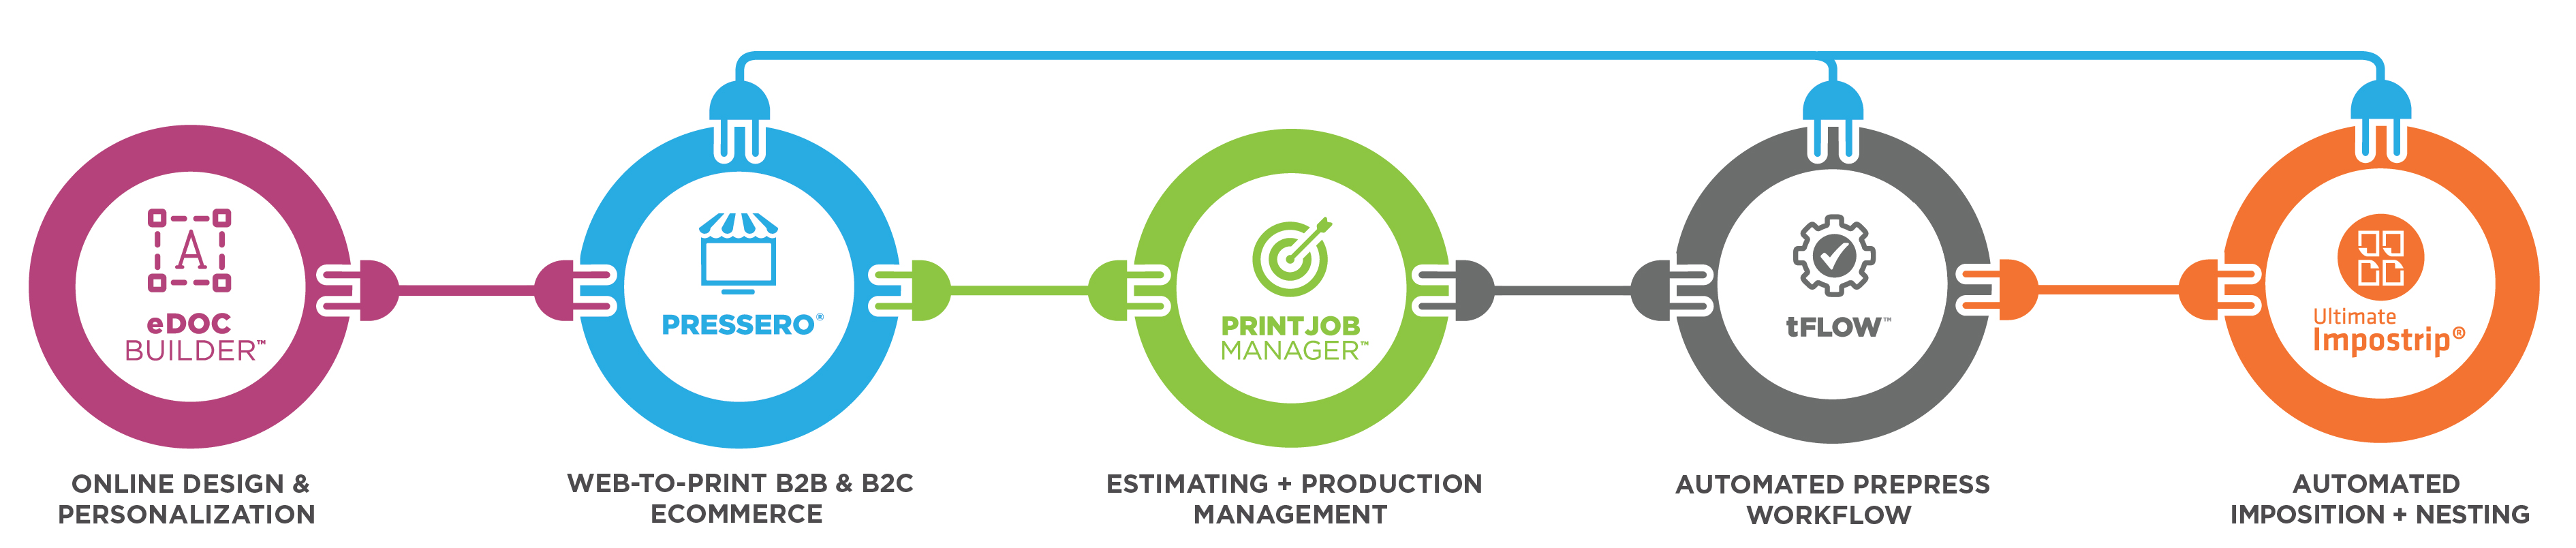 Intelligent Print Workflow Delivers Increased Efficiency Profitability at SGIA